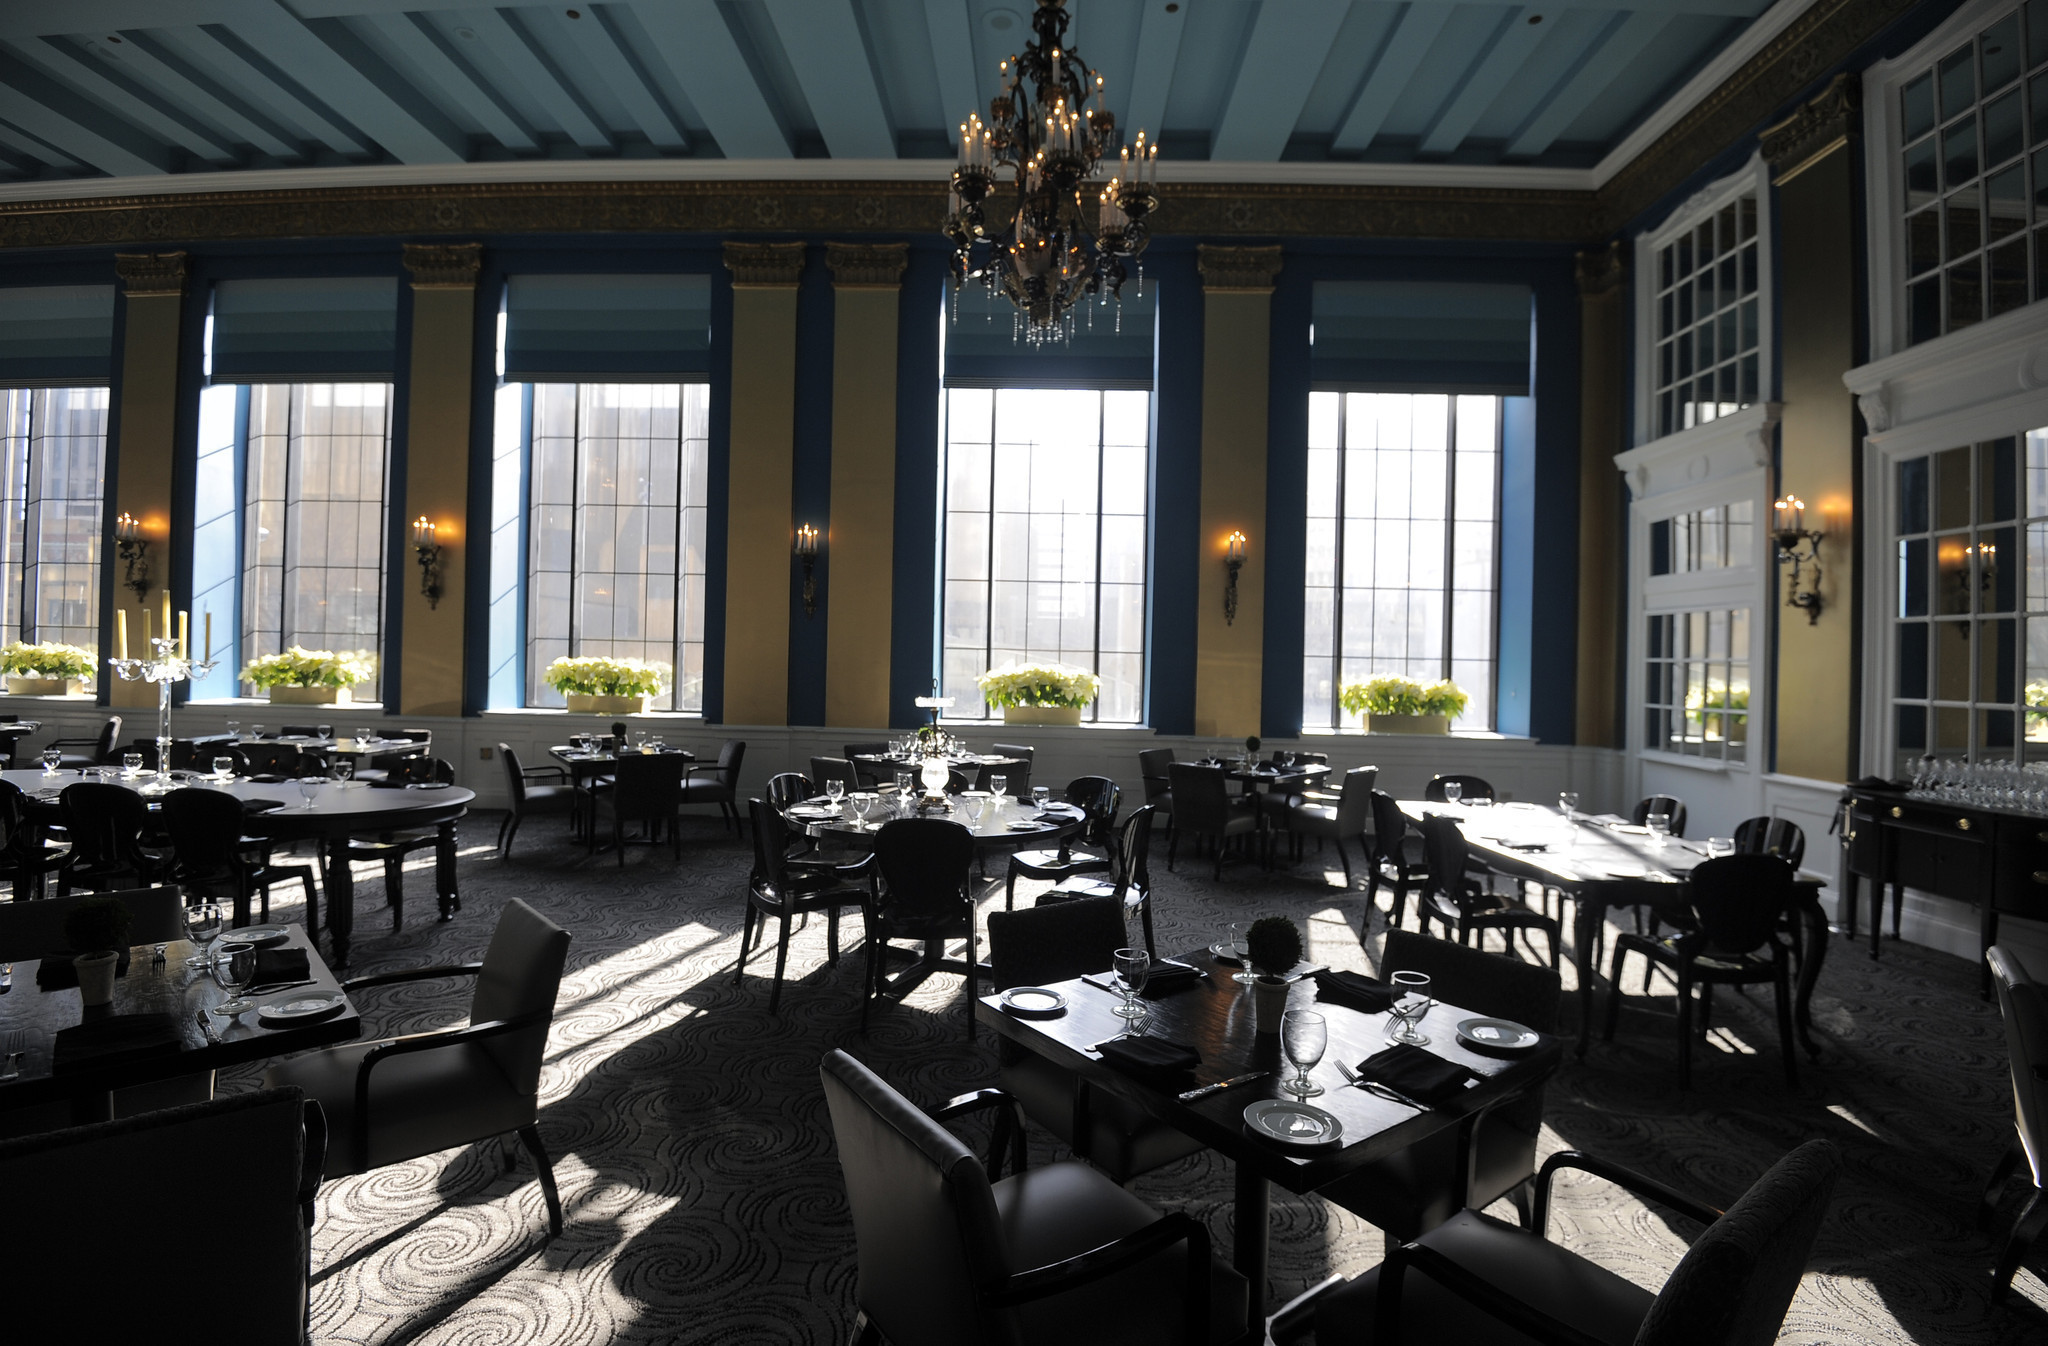 French kitchen at the lord baltimore hotel pictures la for Lord of baltimore hotel